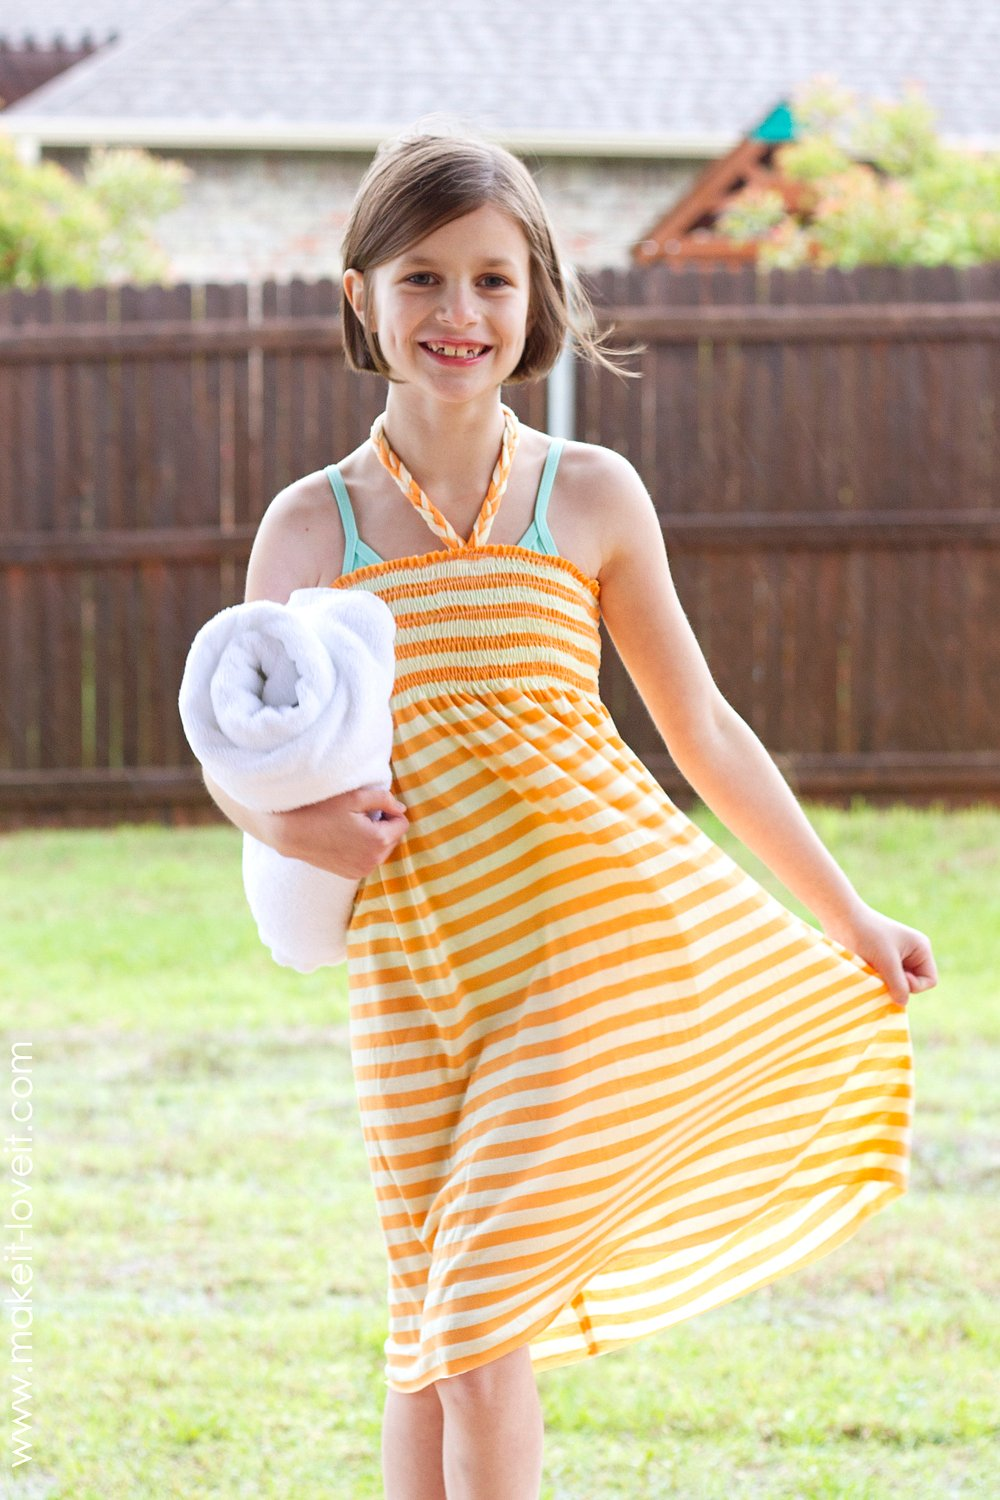 Swim cover-up: shirred dress with braided halter ties